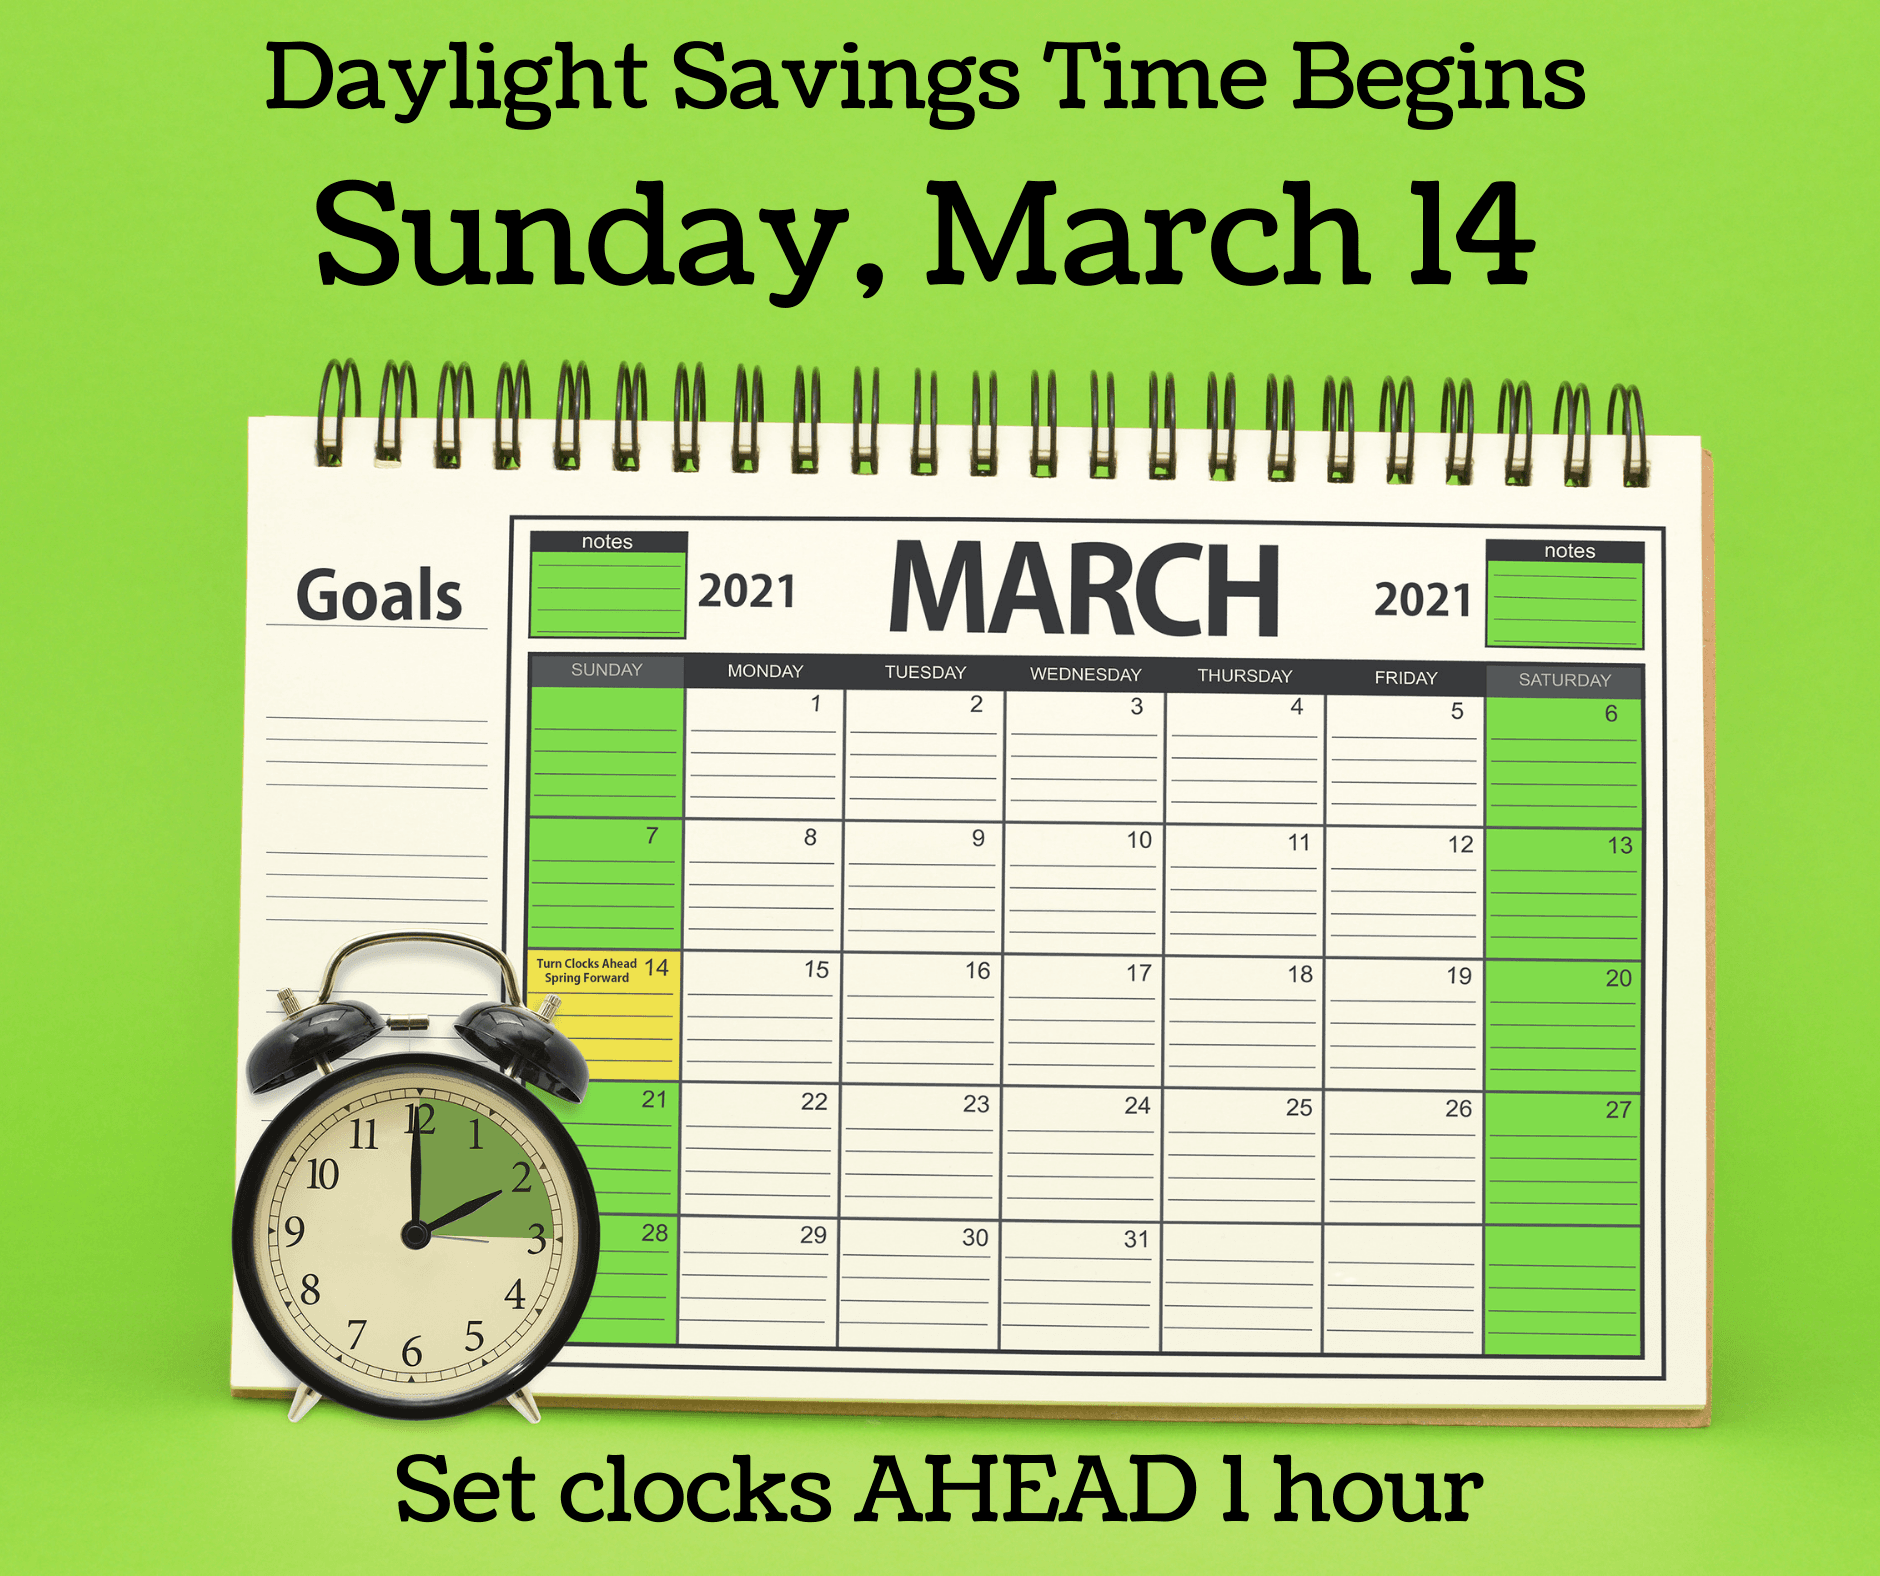 Daylight Savings Time Begins Sunday, March 14